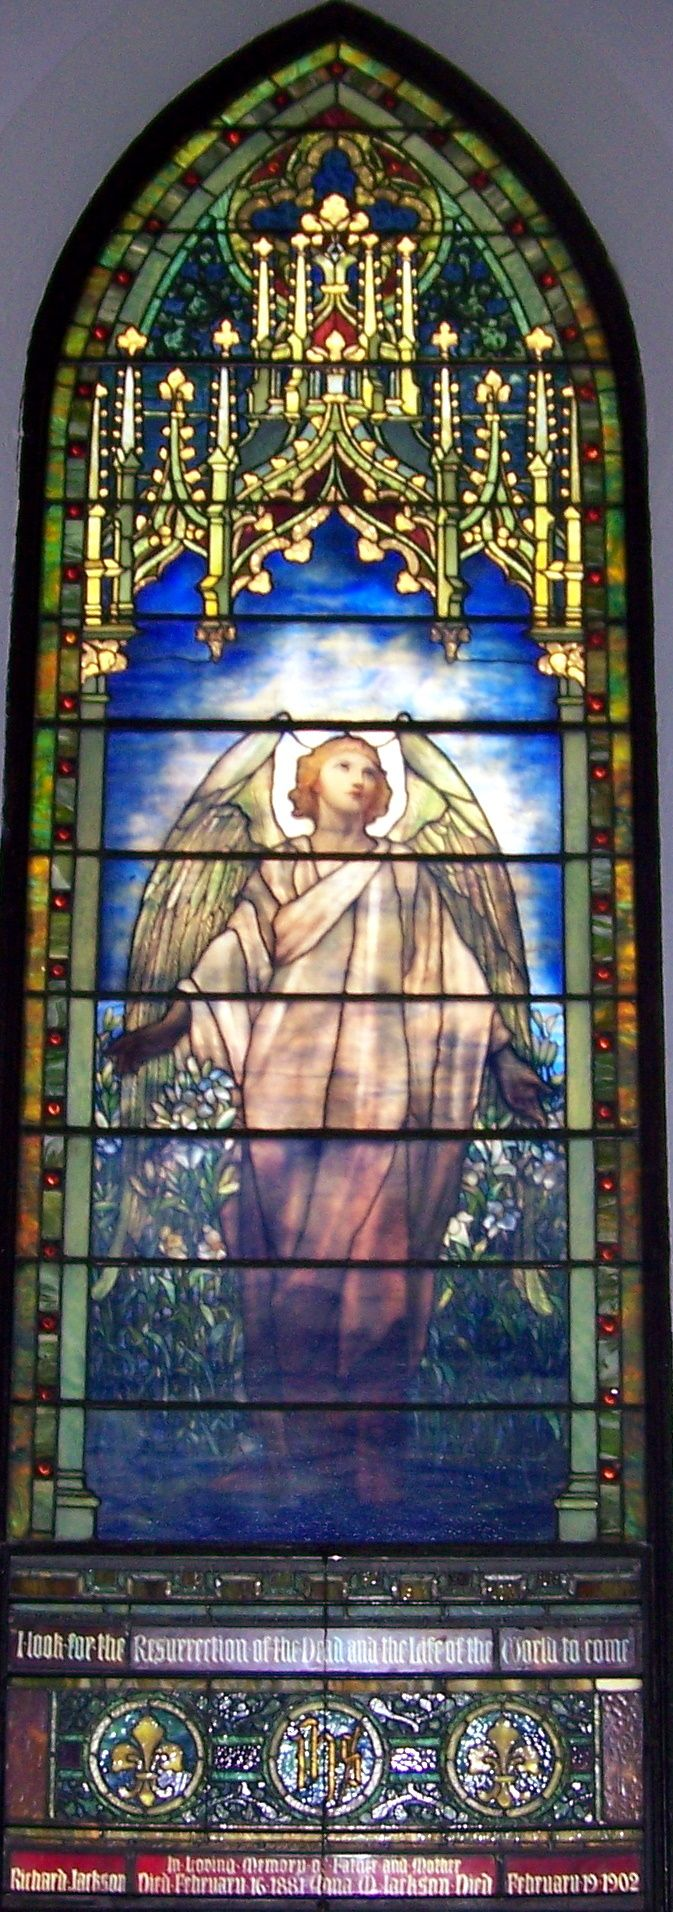 One of the windows on the Tiffany Window Trail in Richmond, Indiana - this one is at St. Paul's Church - www.visitrichmond.org